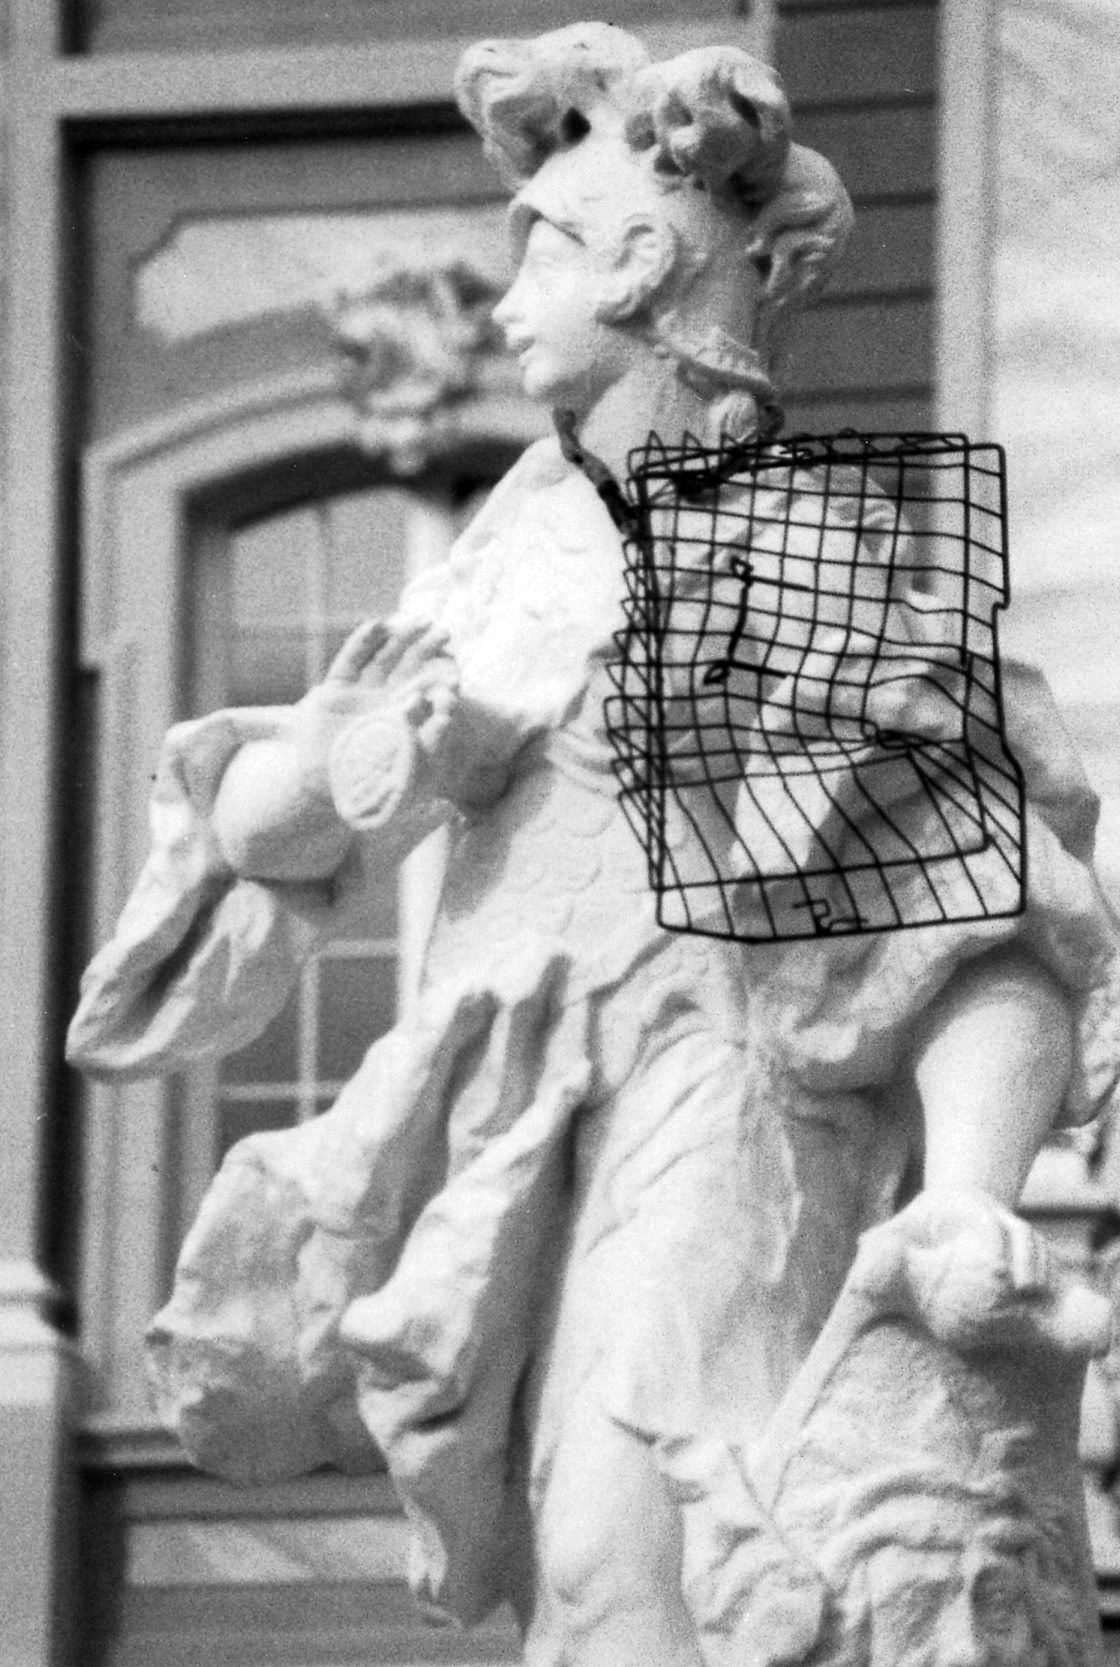 White statue with a black grid basket hanging on it.